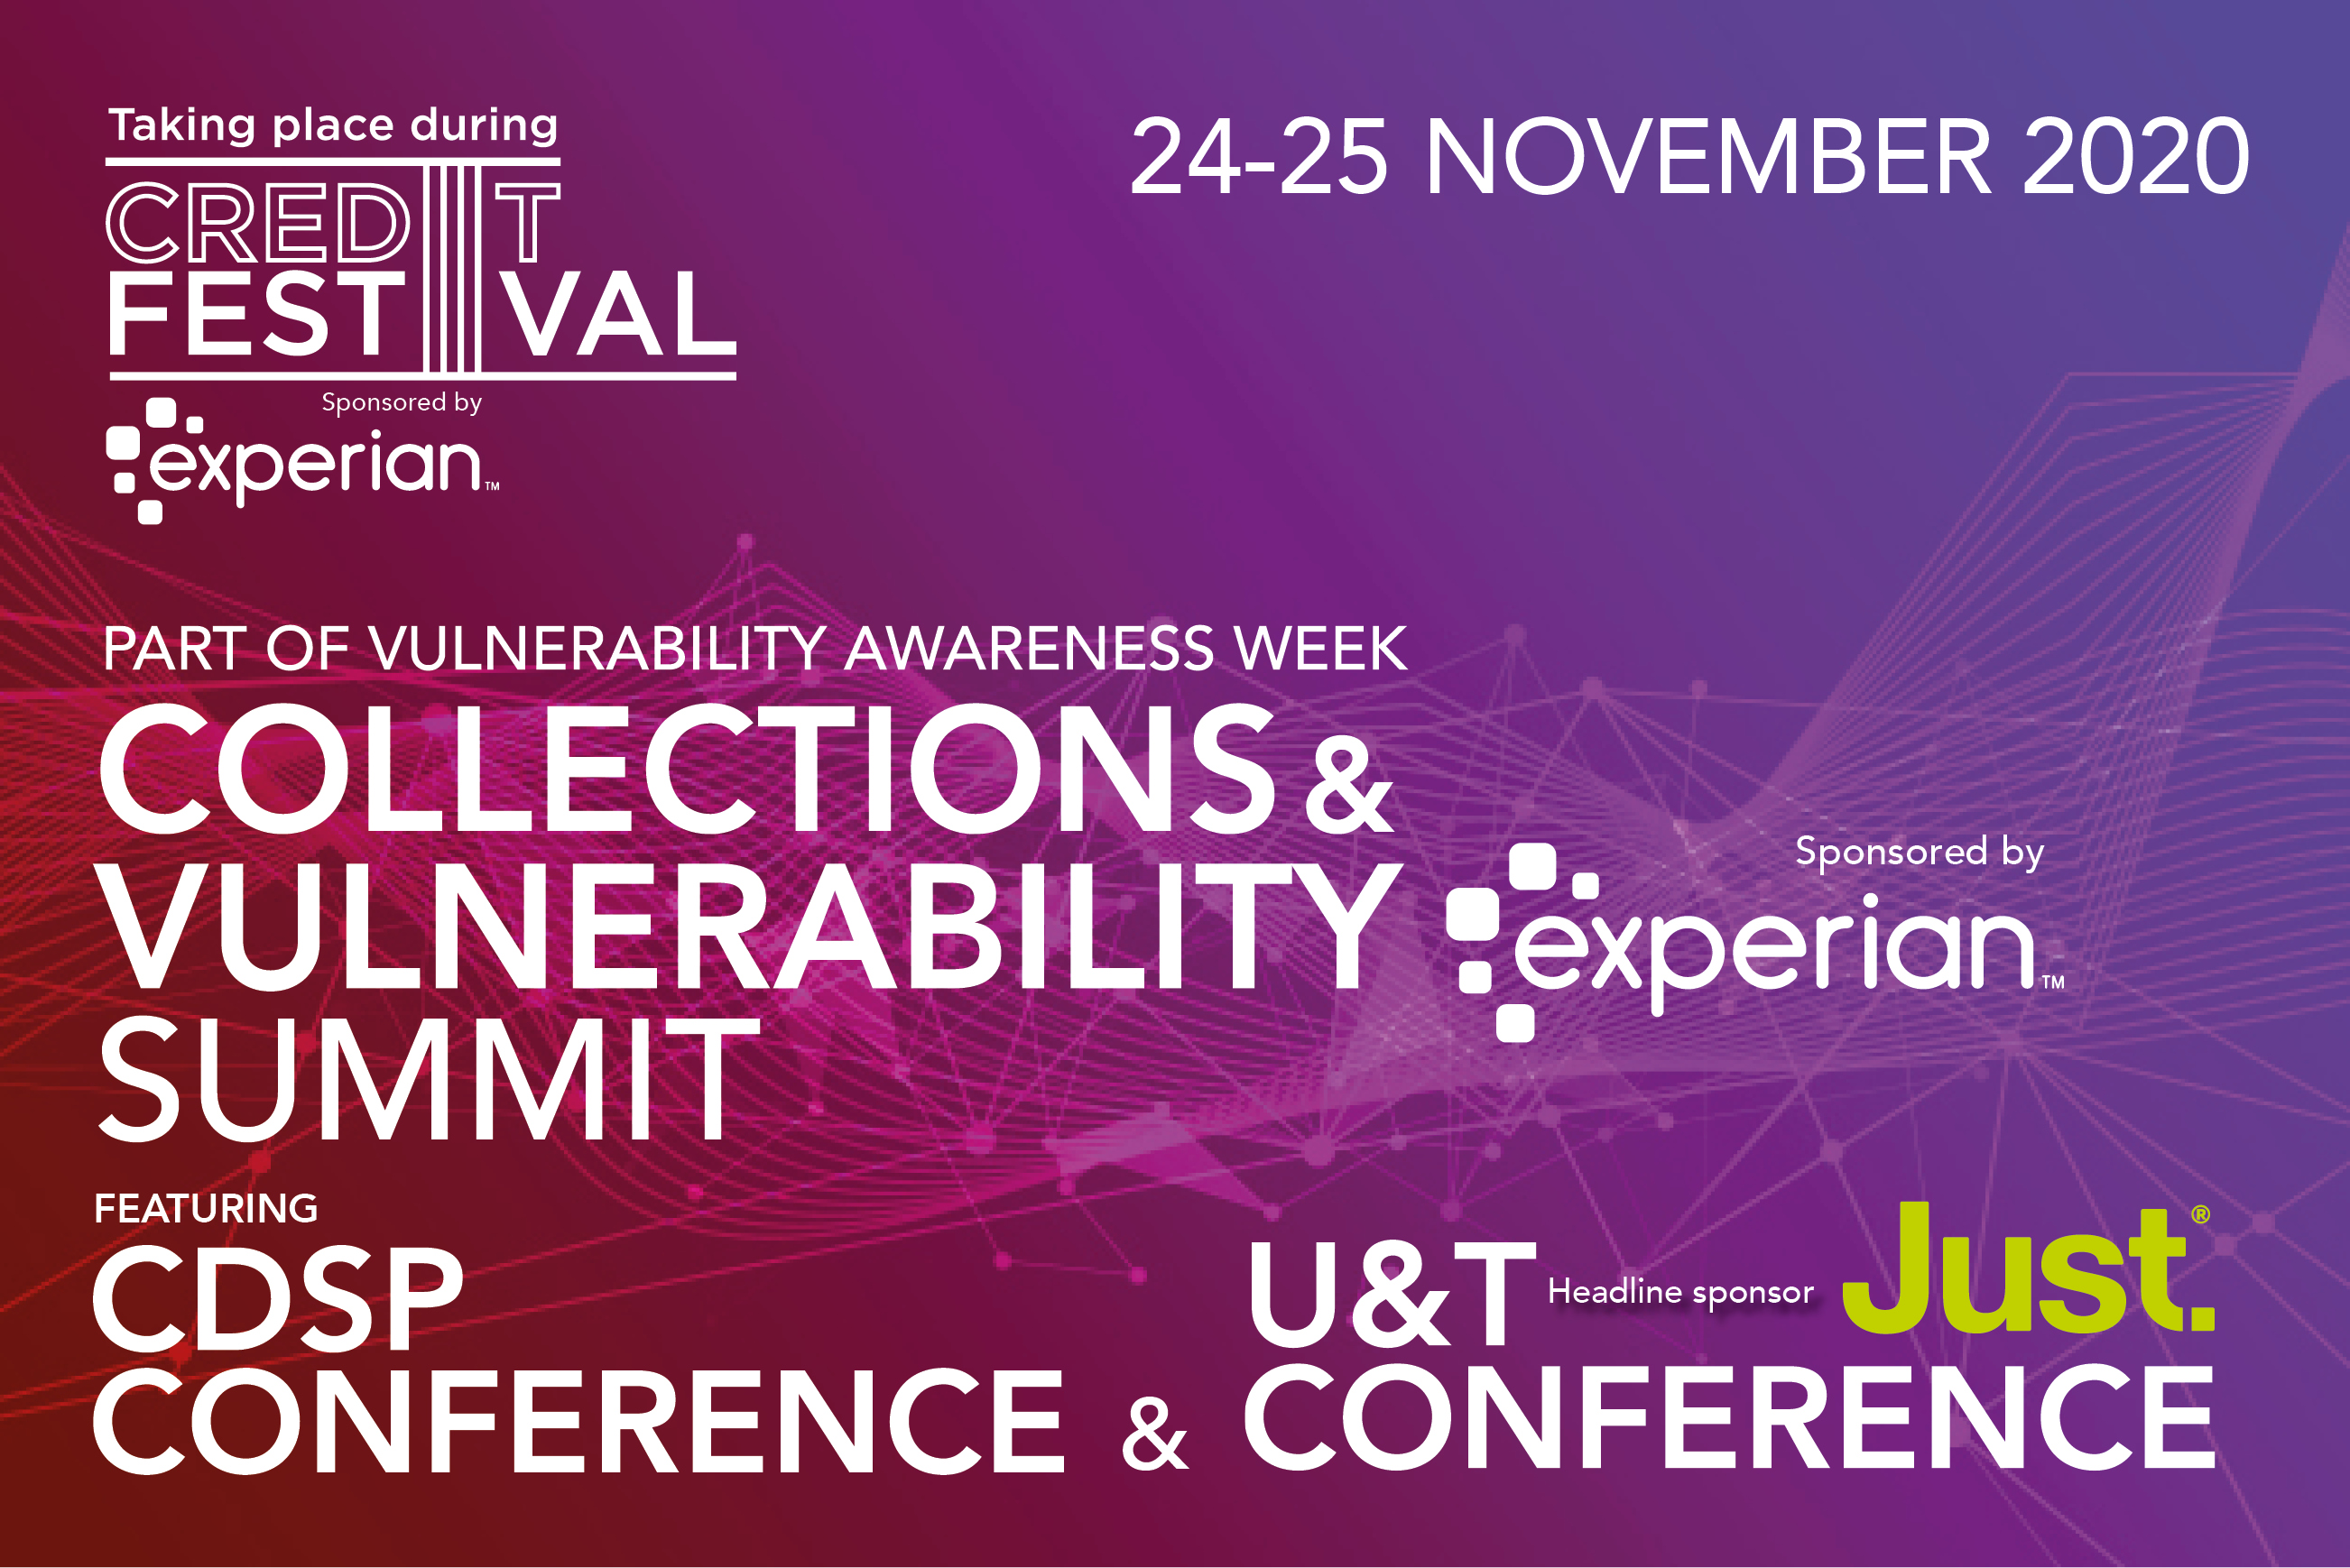 Collections & Vulnerability Summit